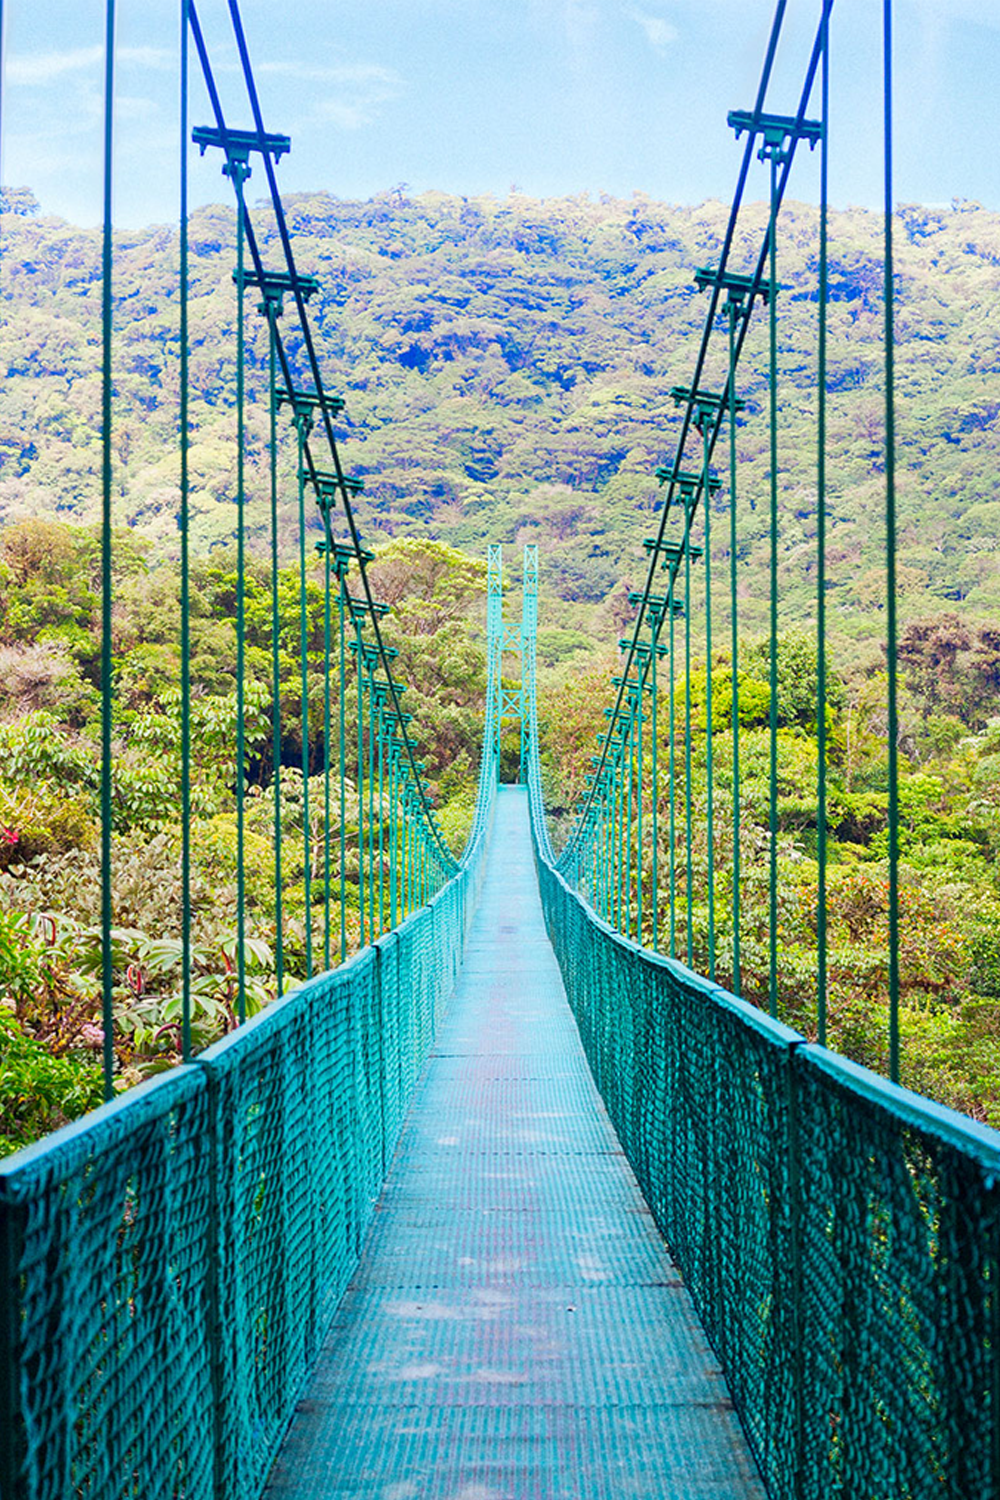 Suspension bridge in Costa Rica